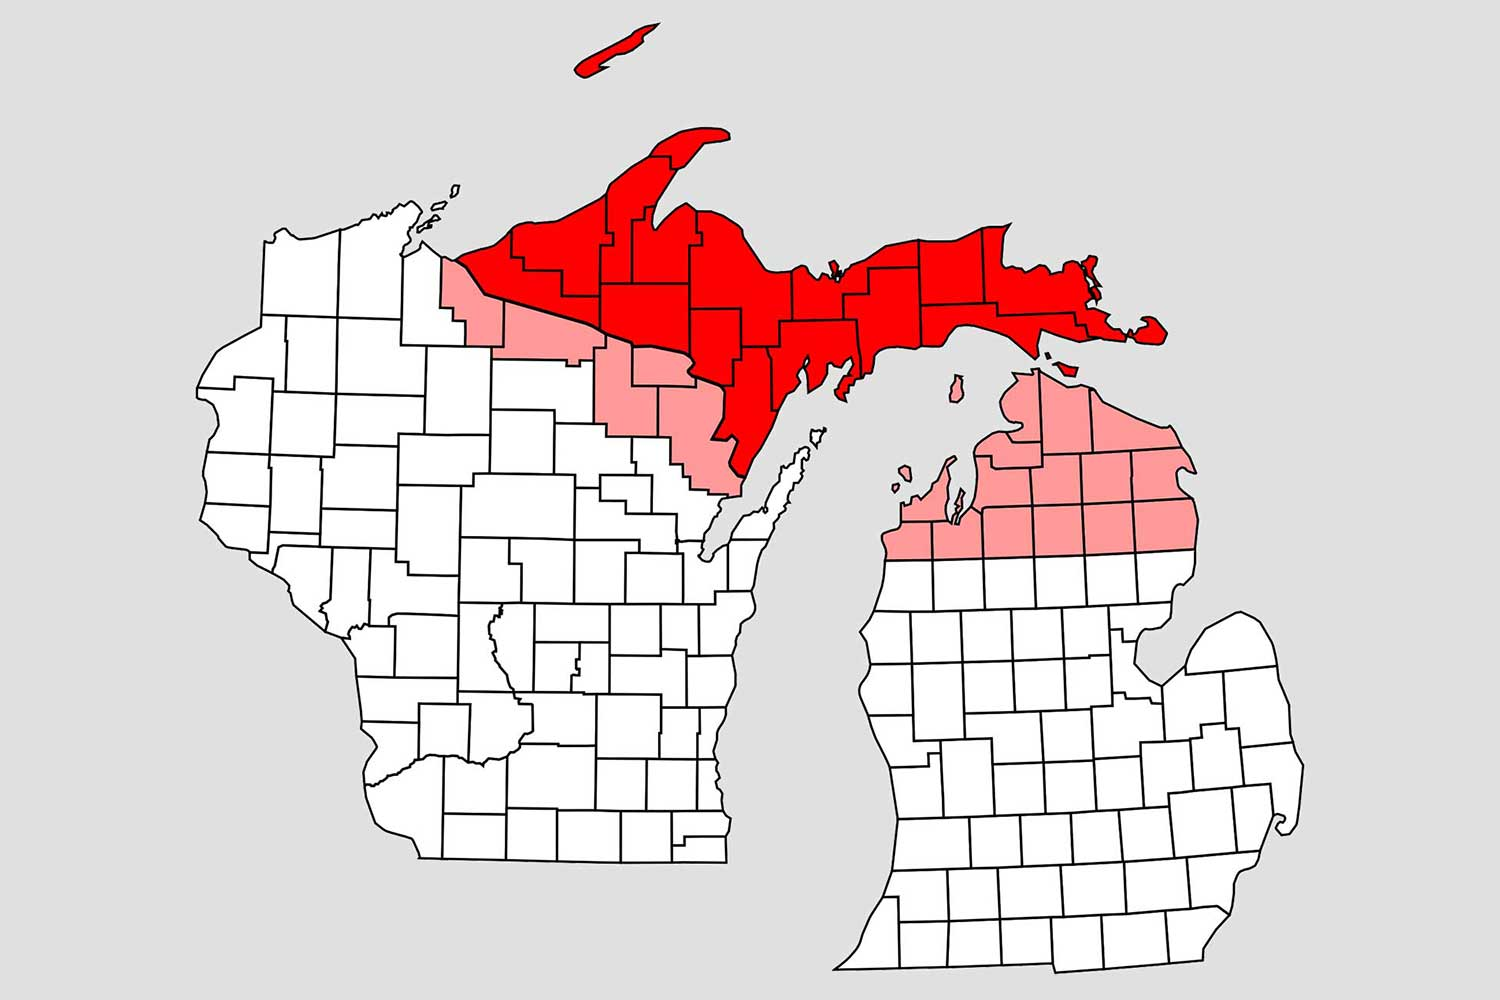 Proposed state of Superior